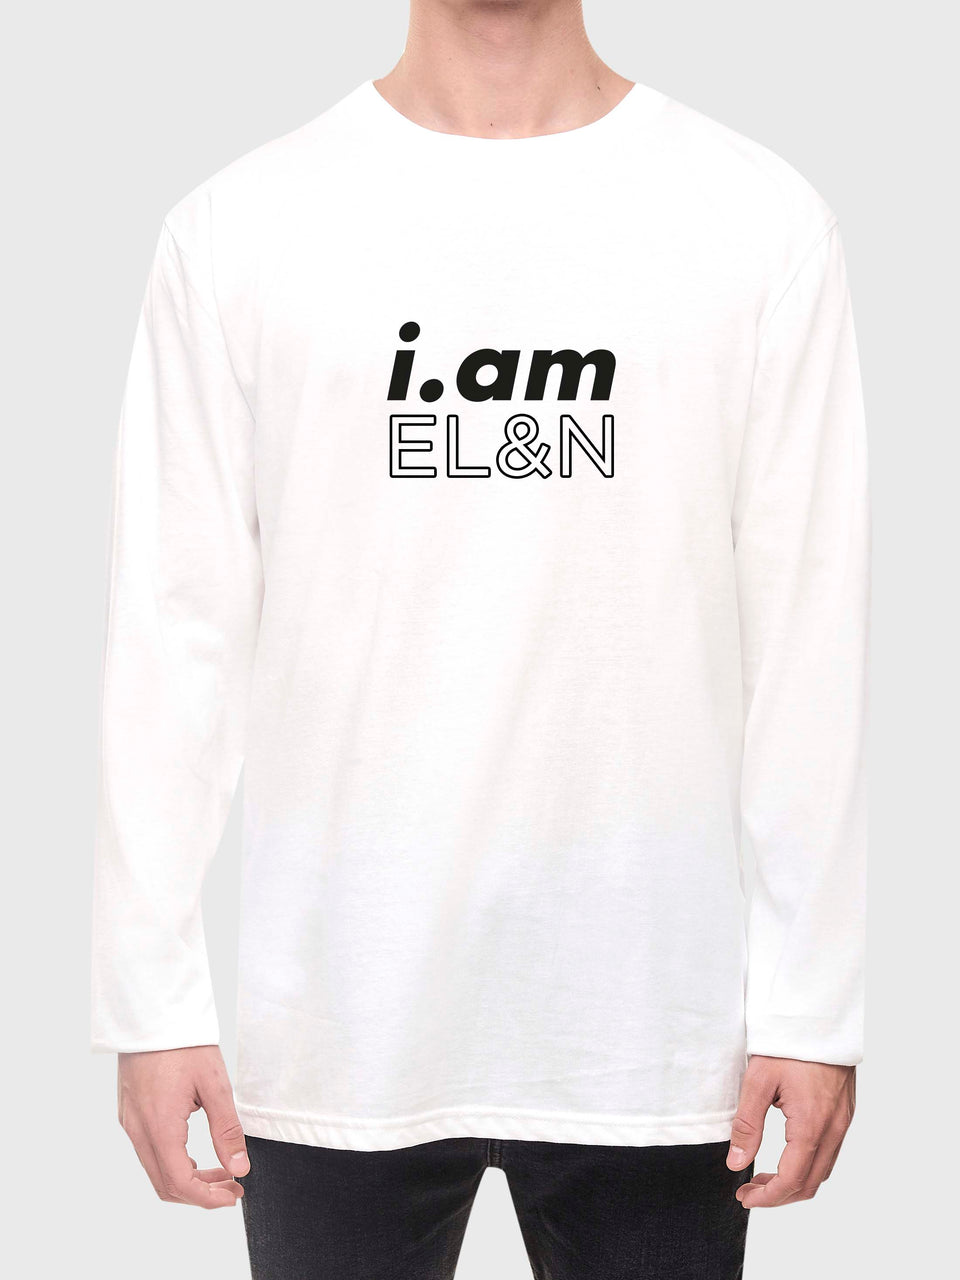 i.am EL&N - White - Unisex long sleeve T